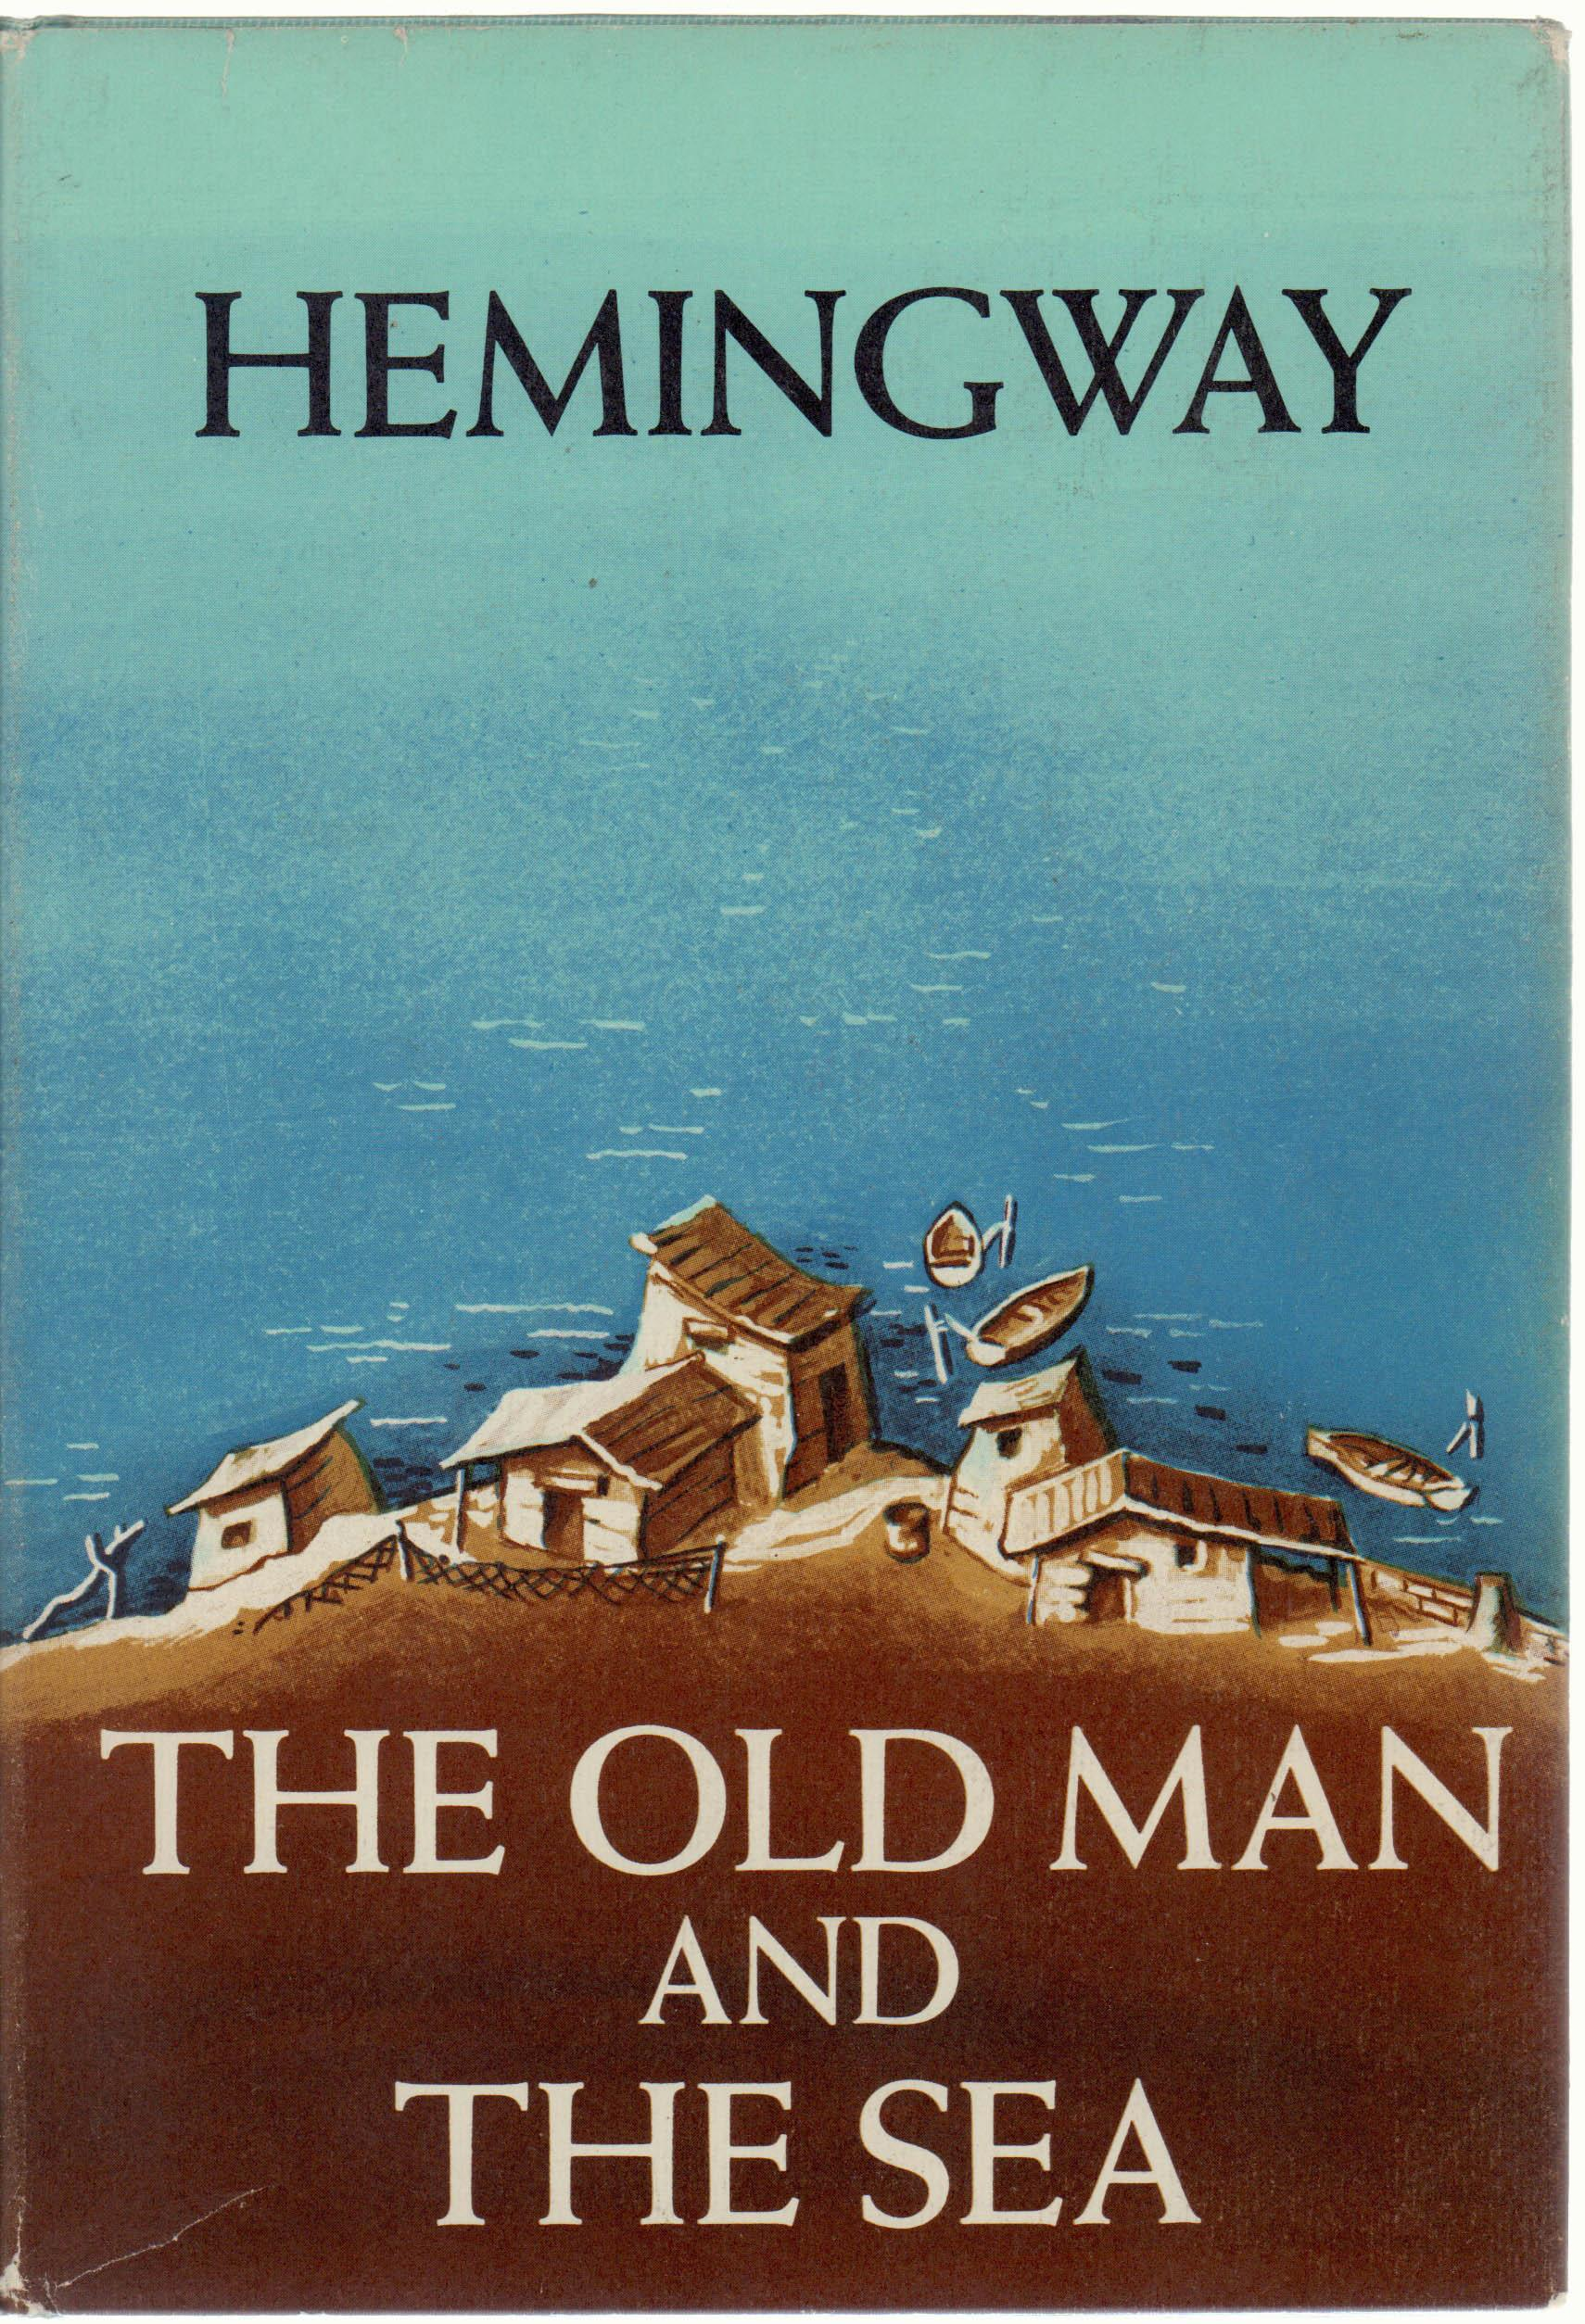 The Old Man And The Sea By Ernest Hemingway Chairish